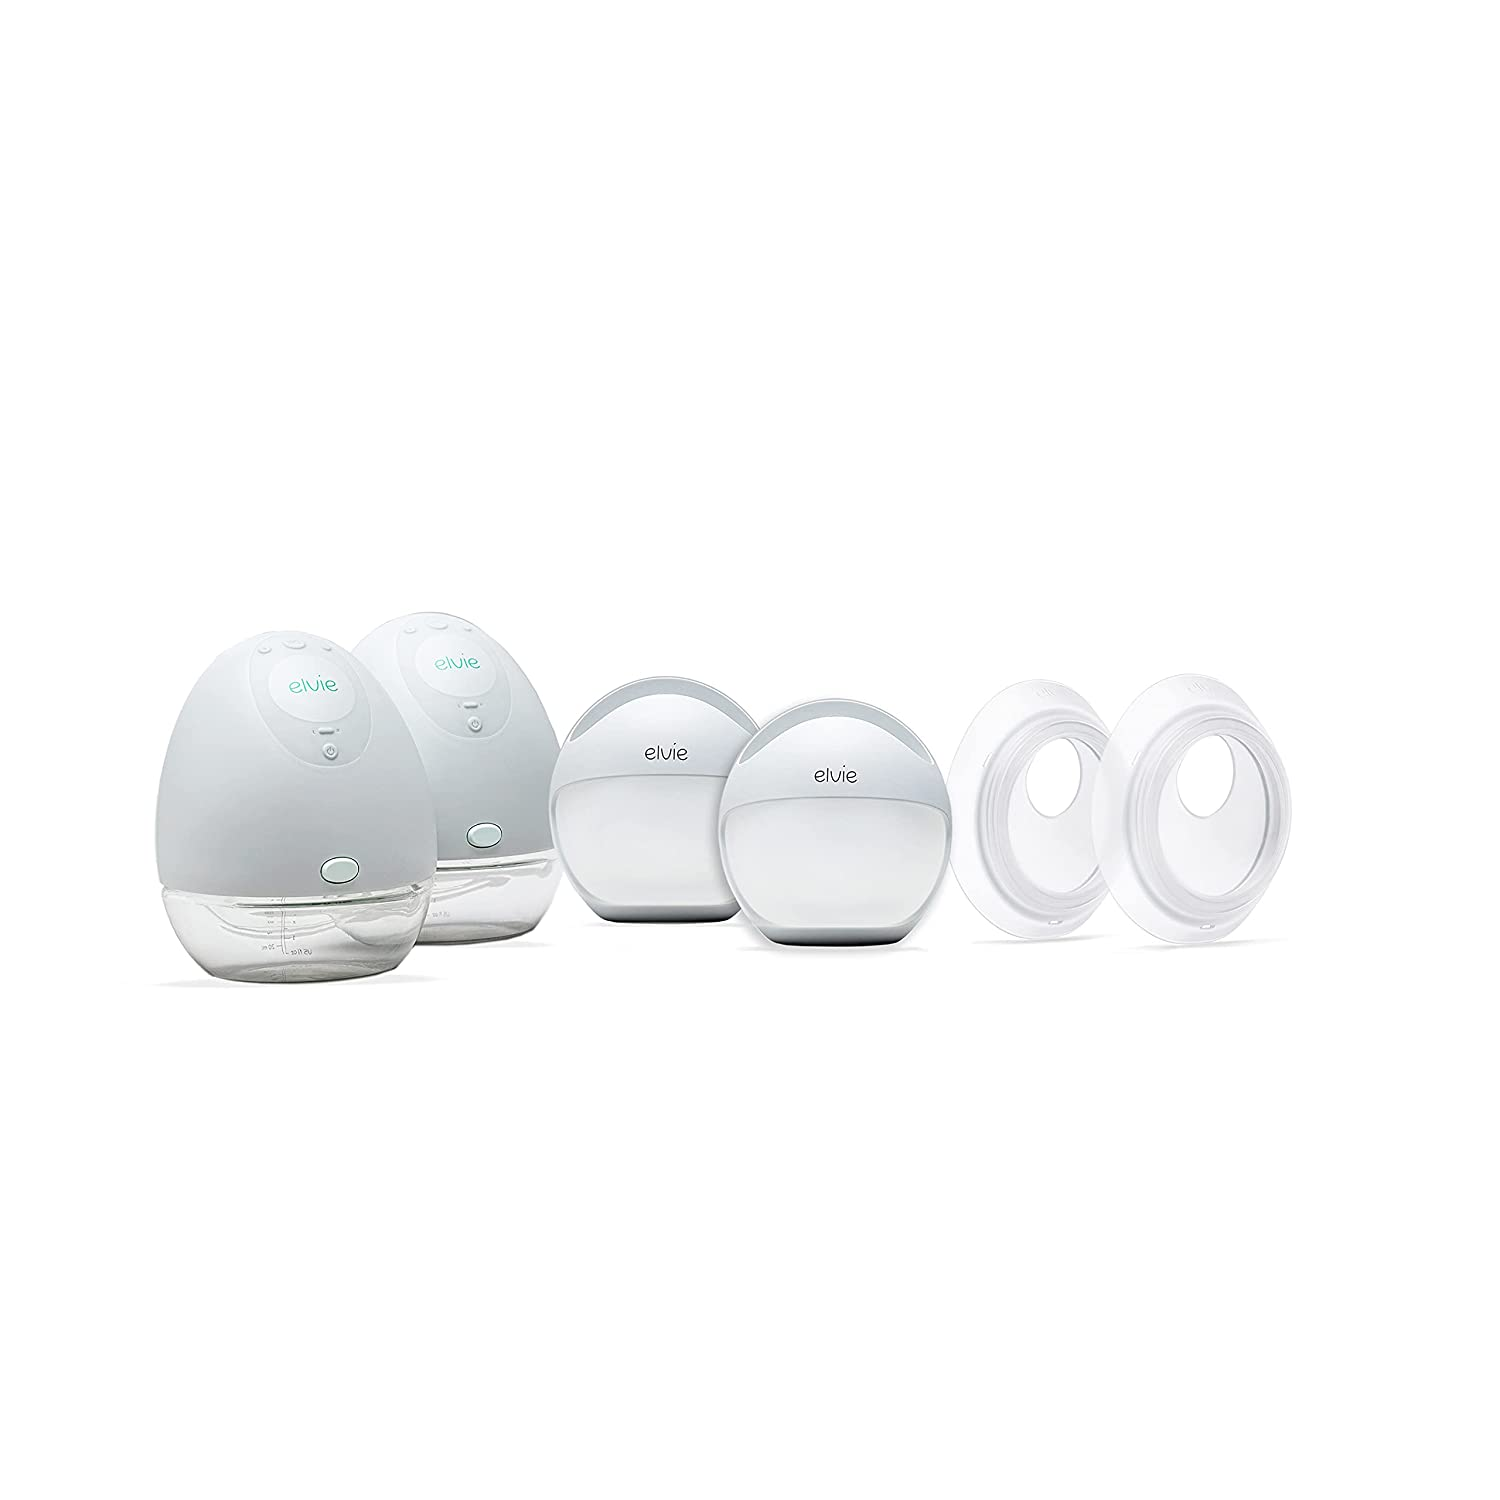 Elvie Breast Pump Bundle - Includes Double Silent Wearable Breast Pump, The Curve Hands-Free Manual Pump, & Catch Secure Milk Collection Cups (Set of 2 Silicone Cups)